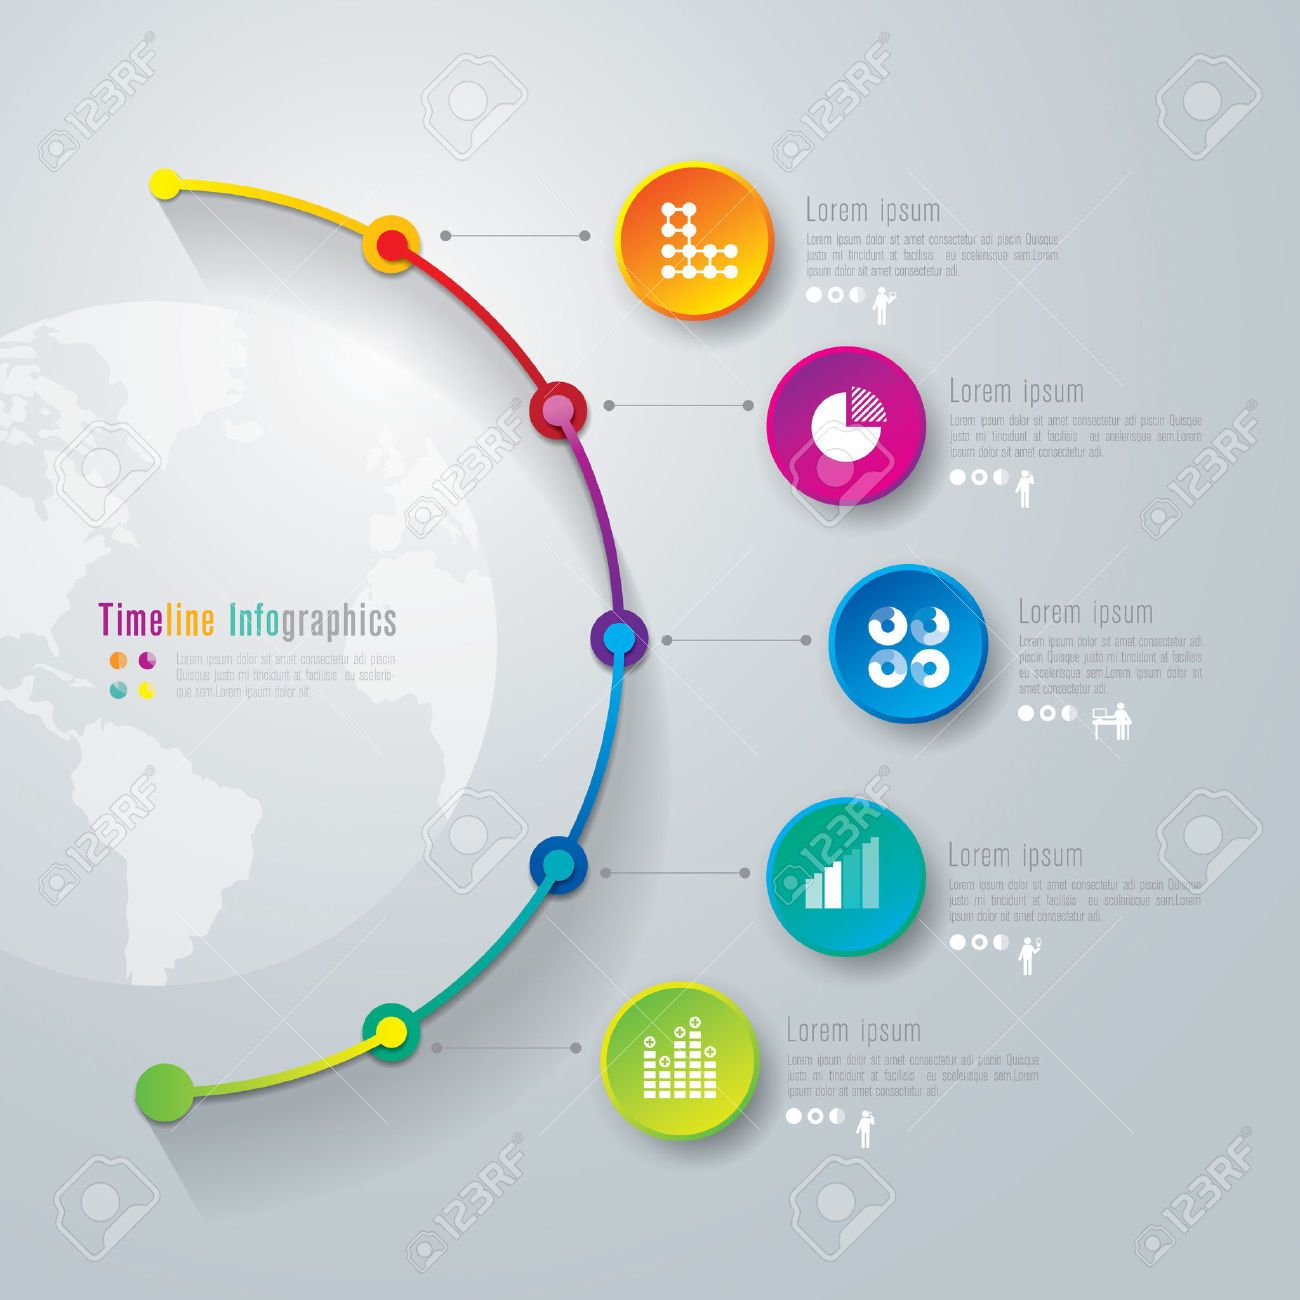 Timeline Infographics Design Template Royalty Free Cliparts